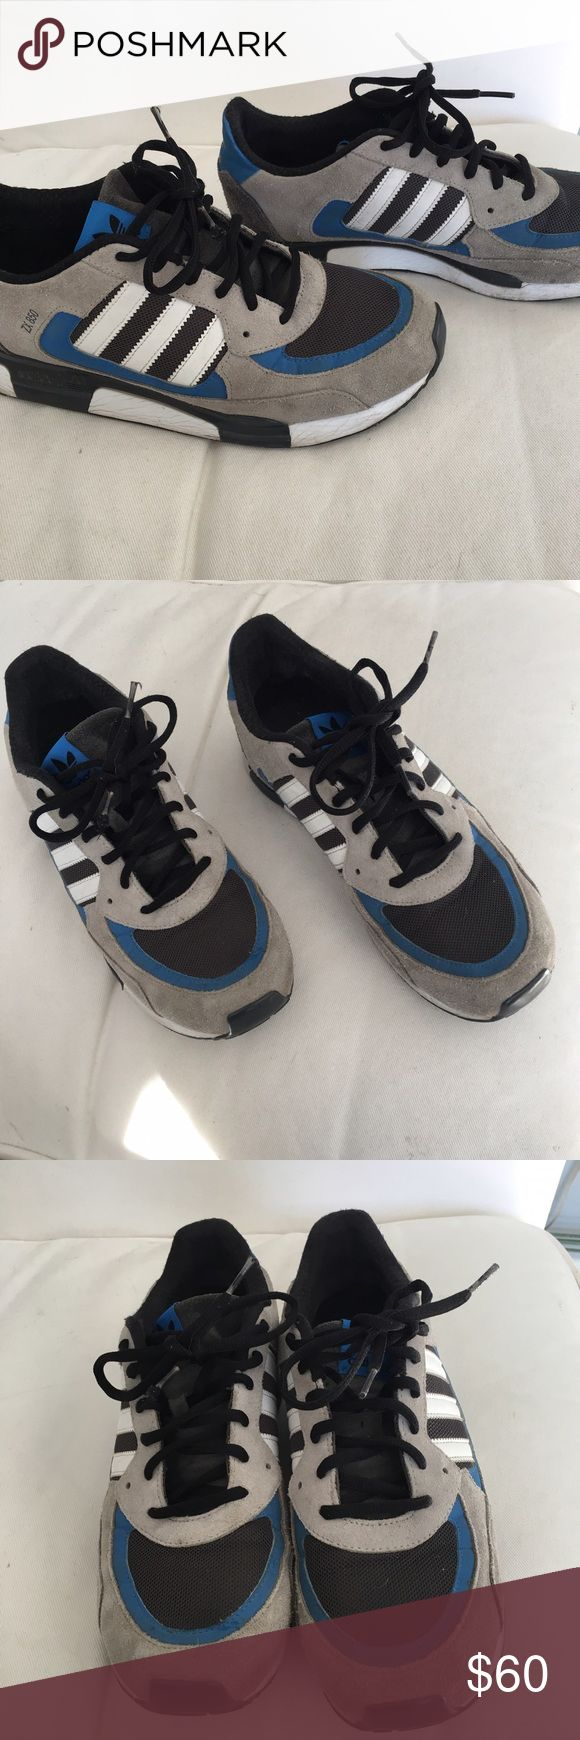 adidas zx 850 men's adidas zx 850 in great condition with some wear on the heel Adidas Shoes Athletic Shoes